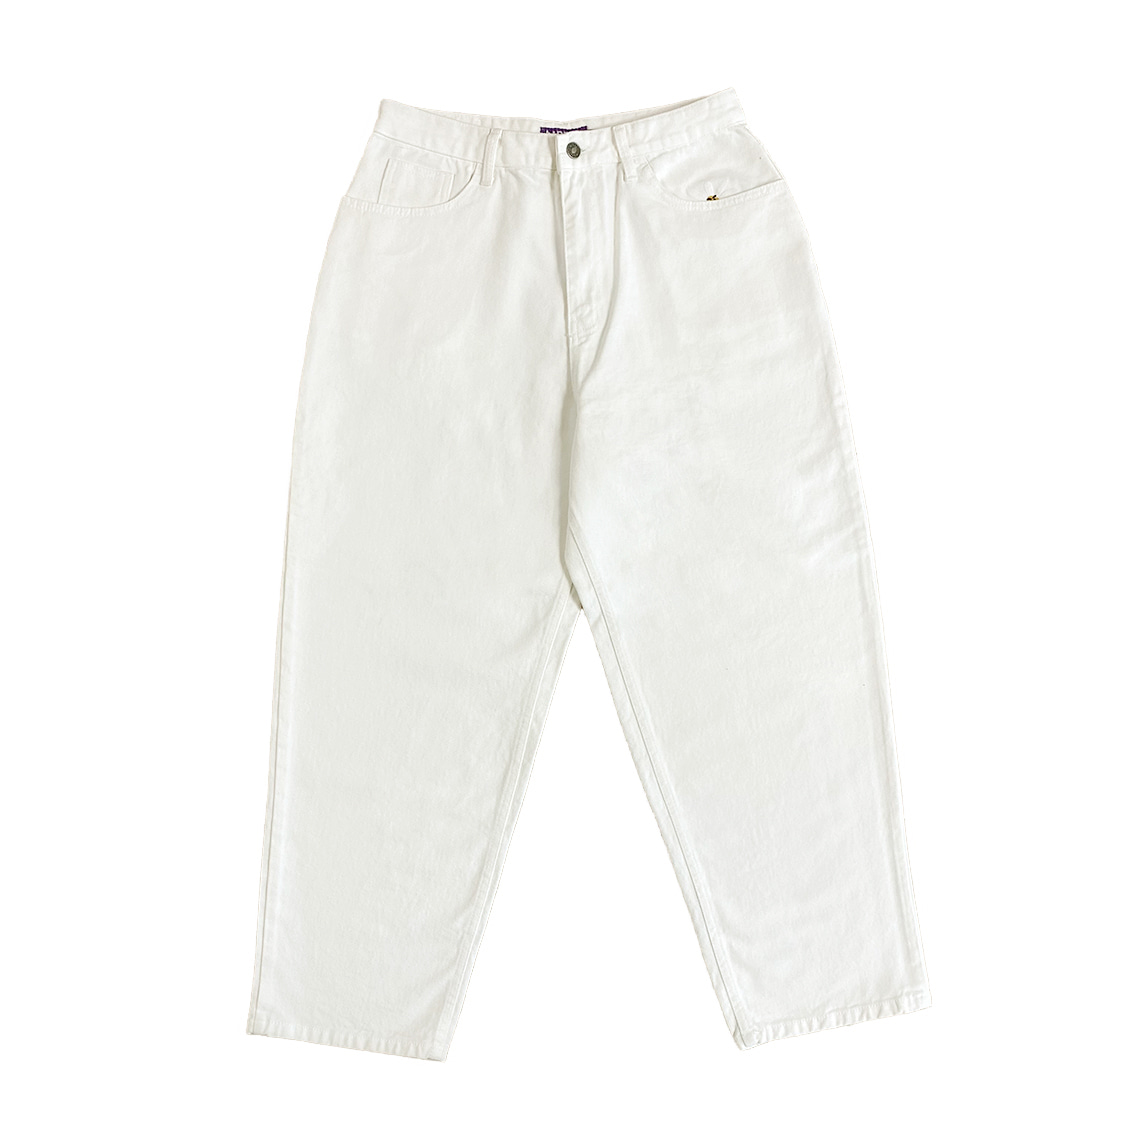 Smart Daisy Jeans (Off White)